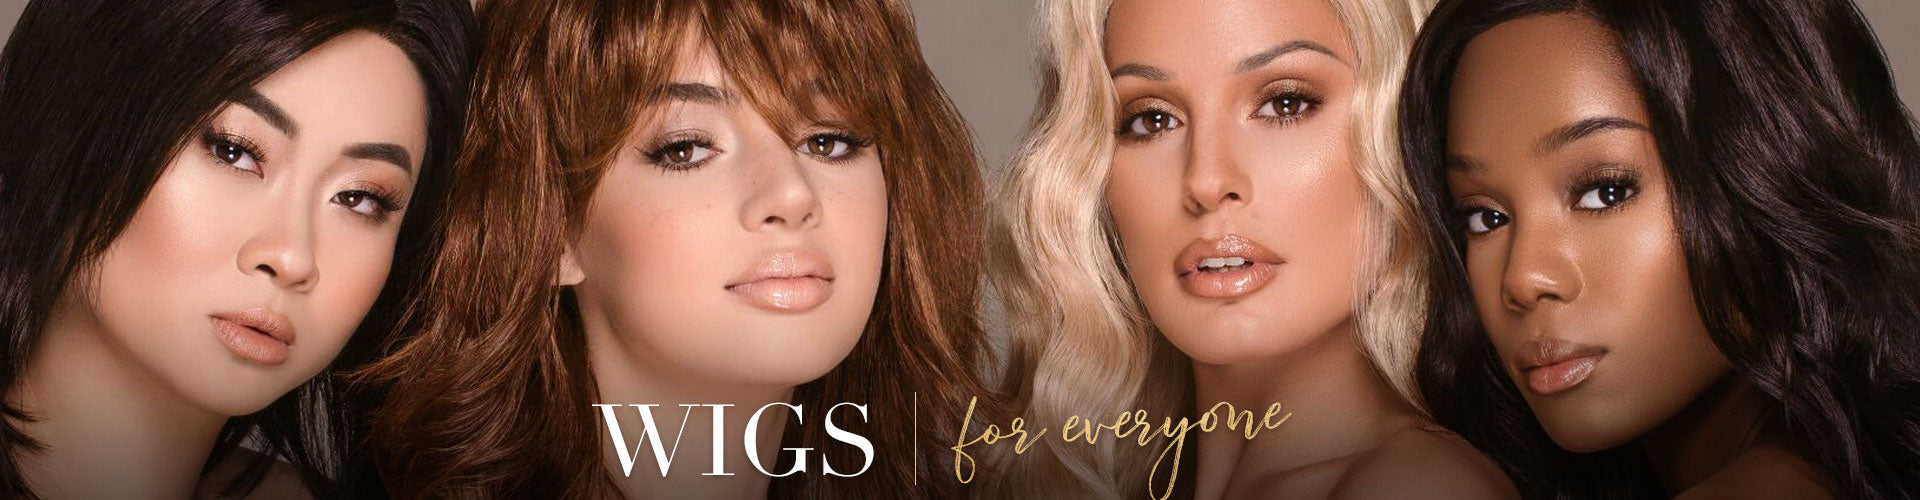 Wigs for Everyone @ Wigs.com